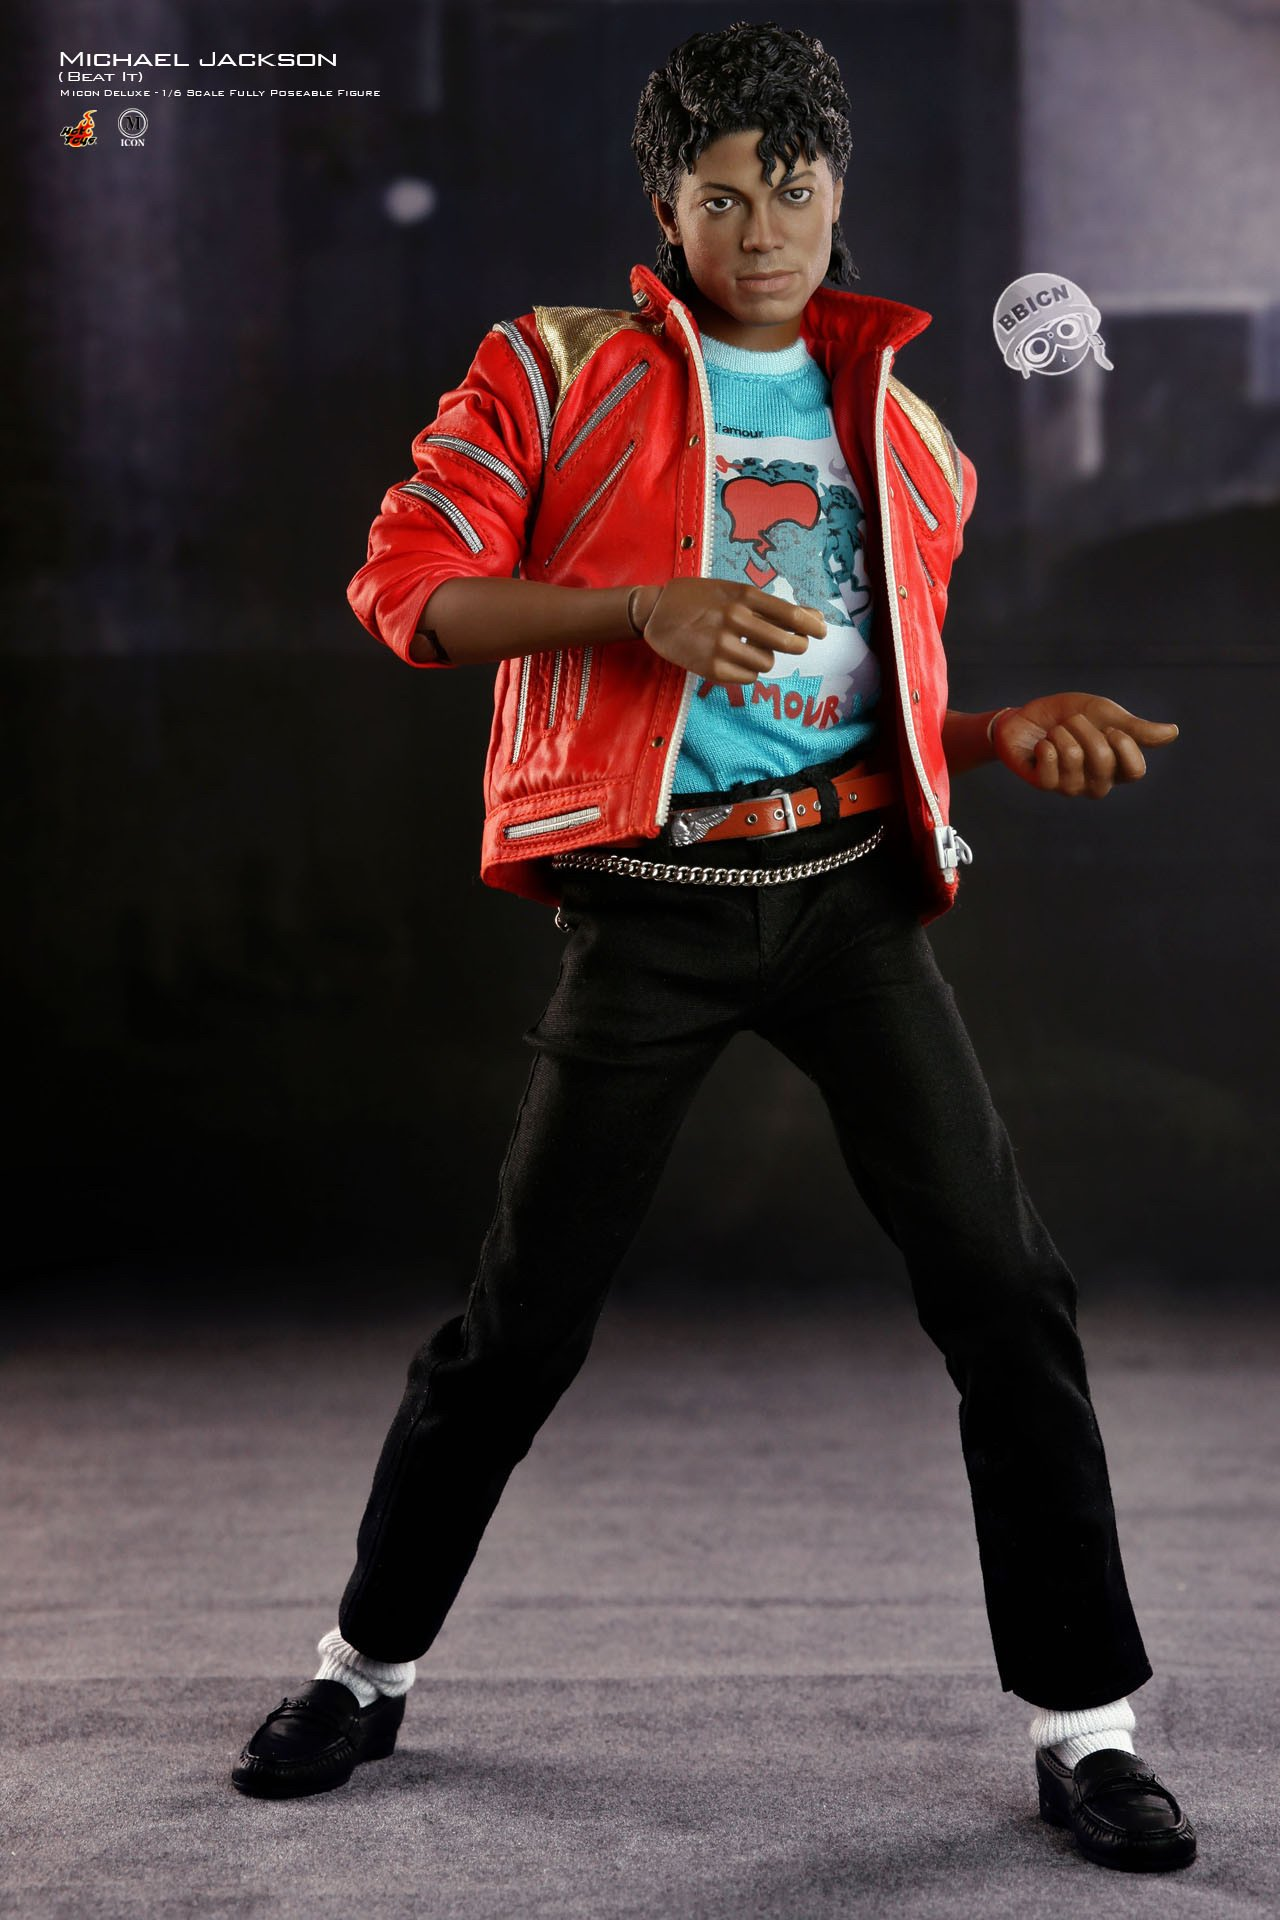 [NUOVE FOTO] Nuova Action Figure di Beat It - Pagina 2 094103qlayqf3dcgqdxxdg